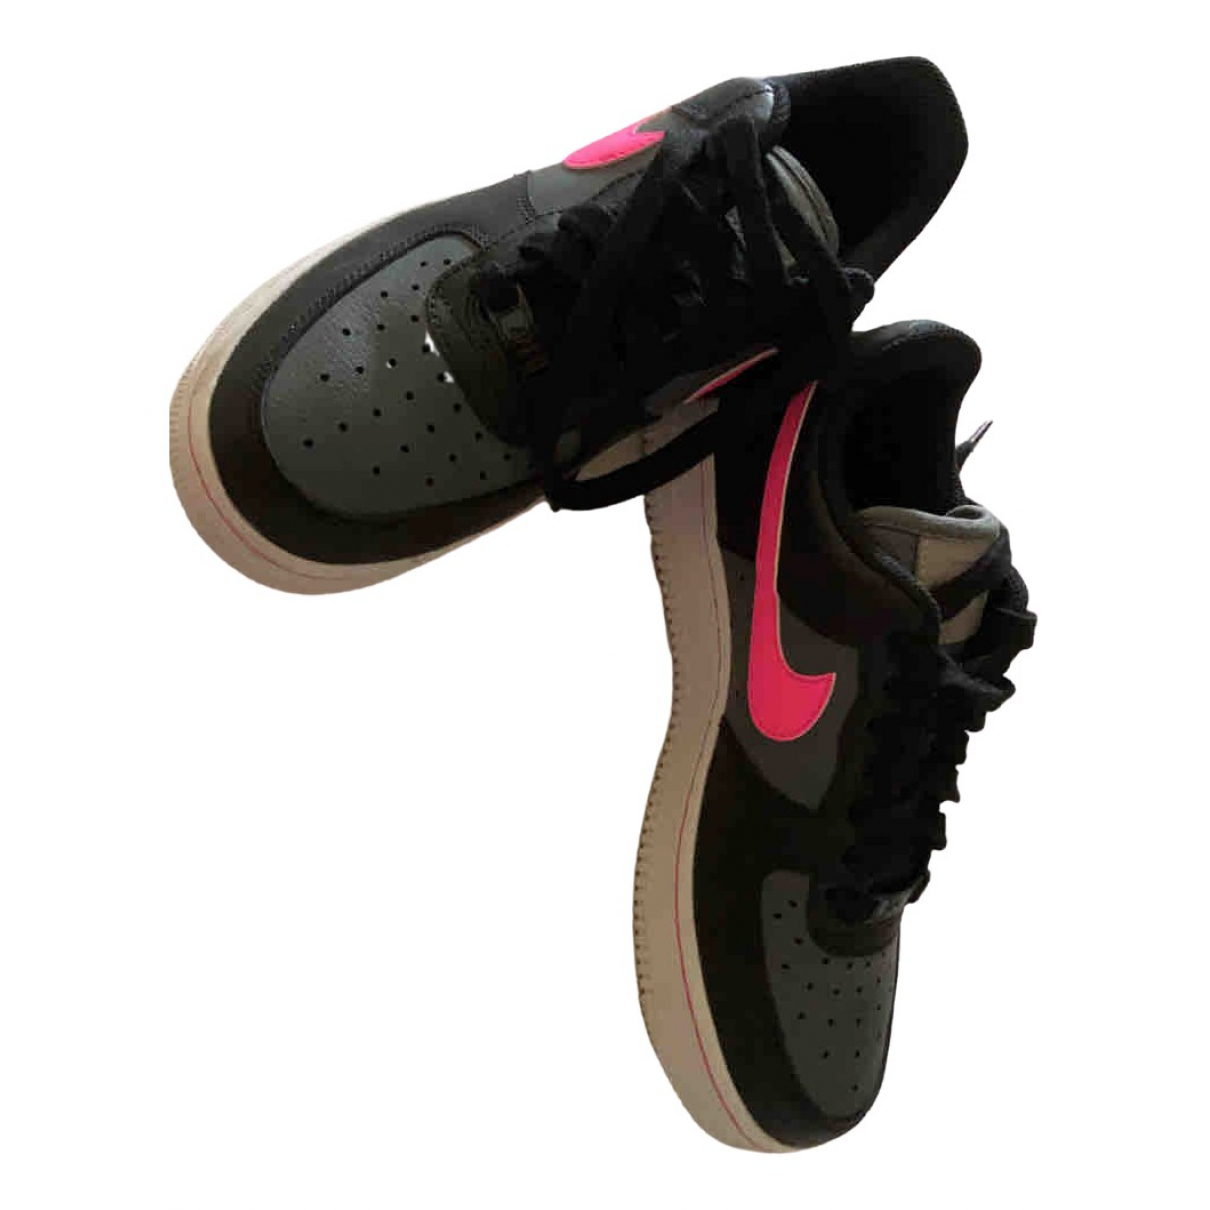 Nike Air Force 1 Black Leather Trainers for Women 36.5 EU